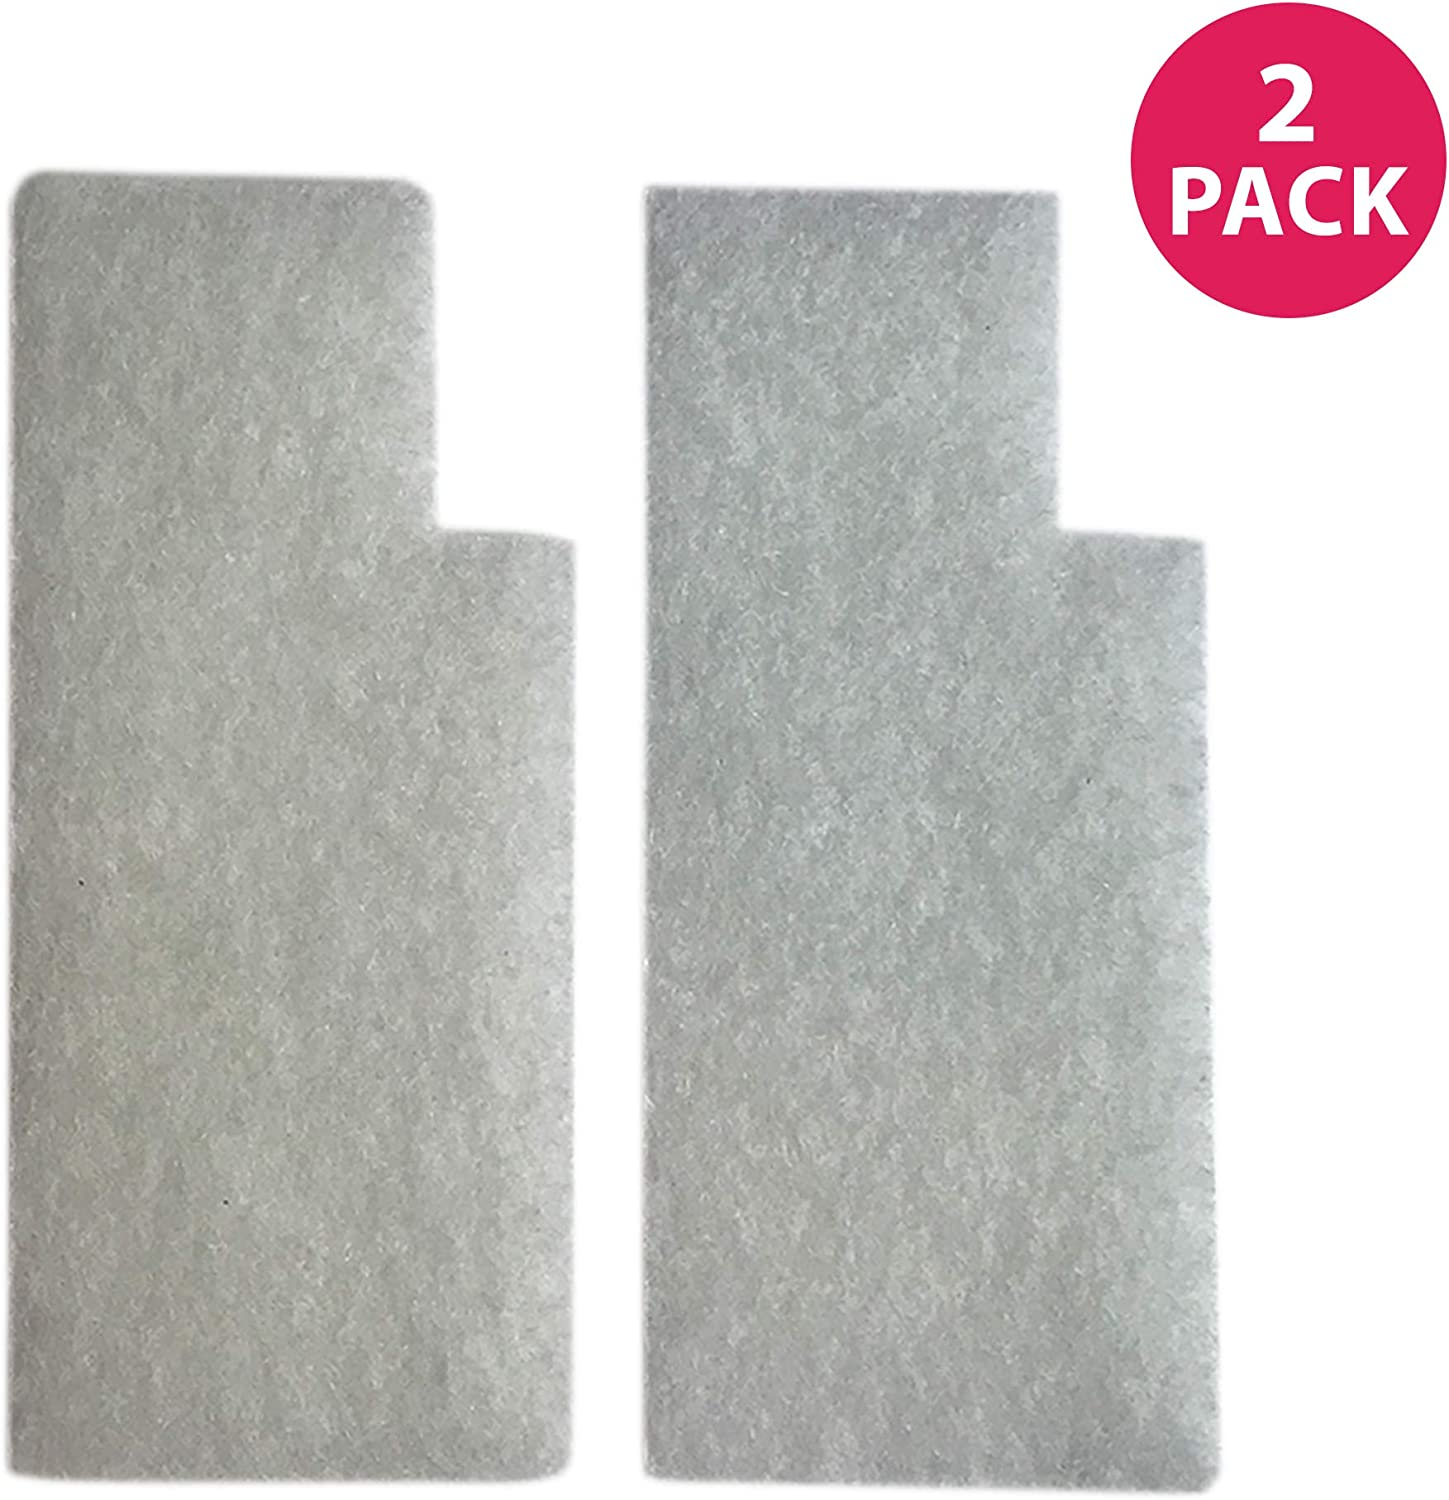 Crucial Vacuum Filter Replacement Parts Compatible with Hoover Secondary Filters Part # 38765019, 38765023 - Fits Hoover Tempo, WidePath, Fold Away, and WindTunnel Vacuums - Perfect for Home (2 Pack)